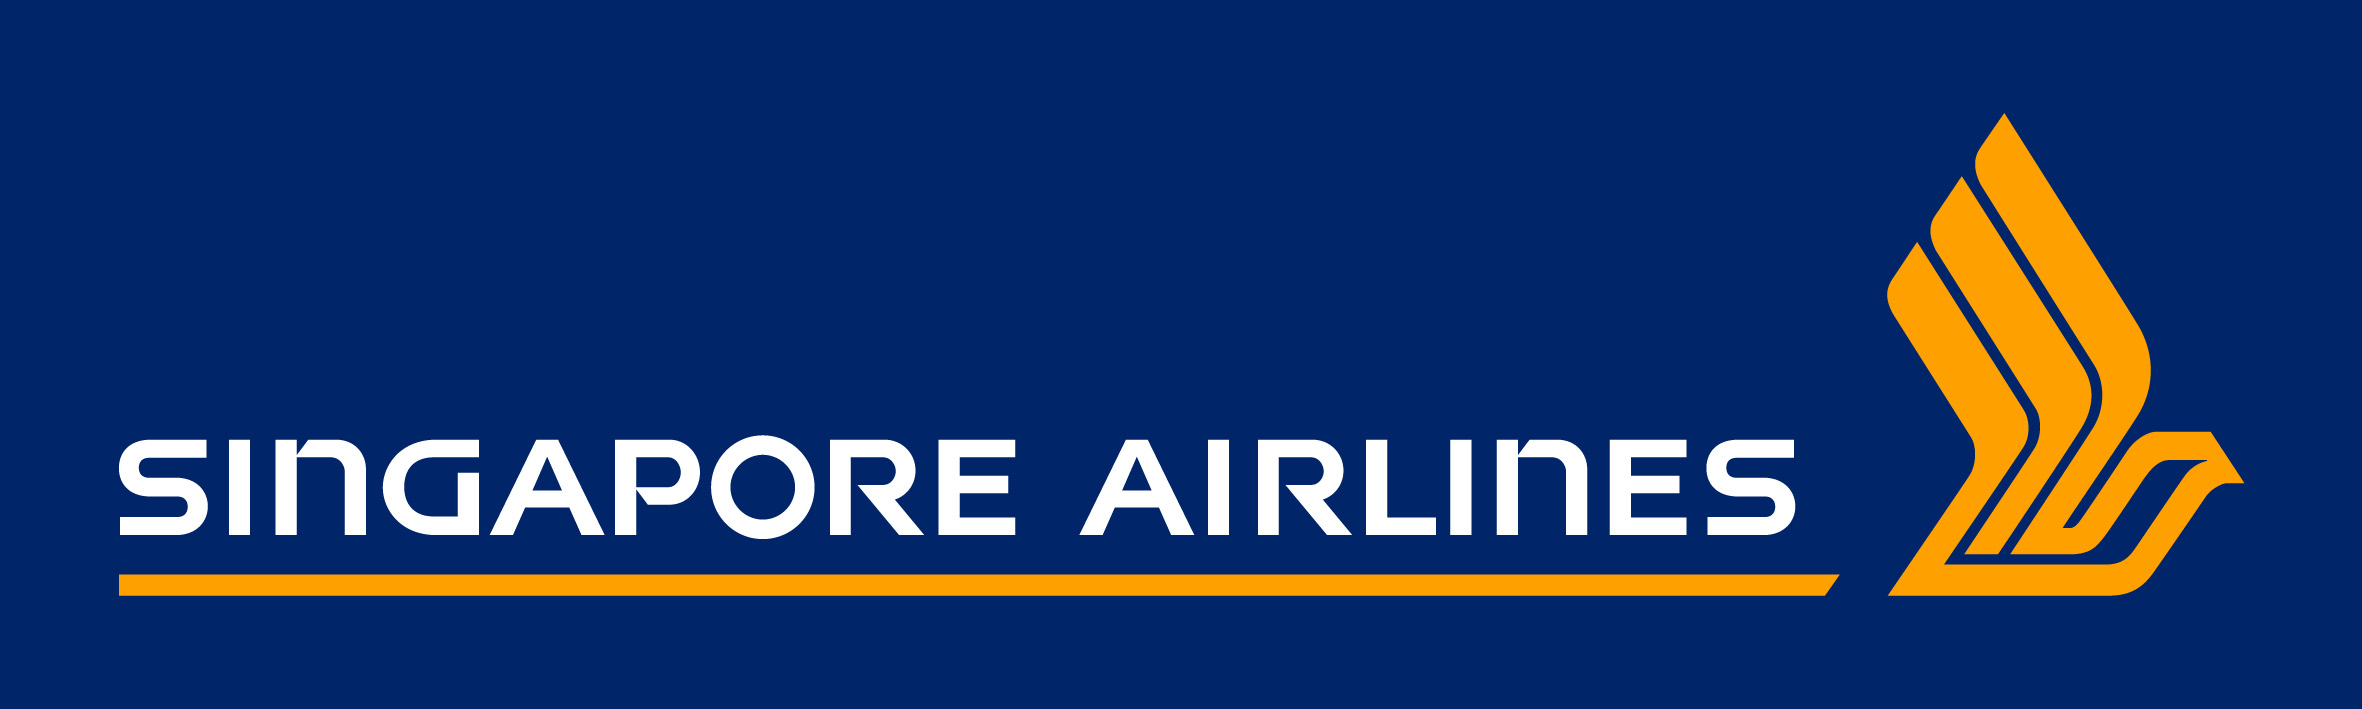 Singapore Airlines - Singapore Airlines Logo PNG